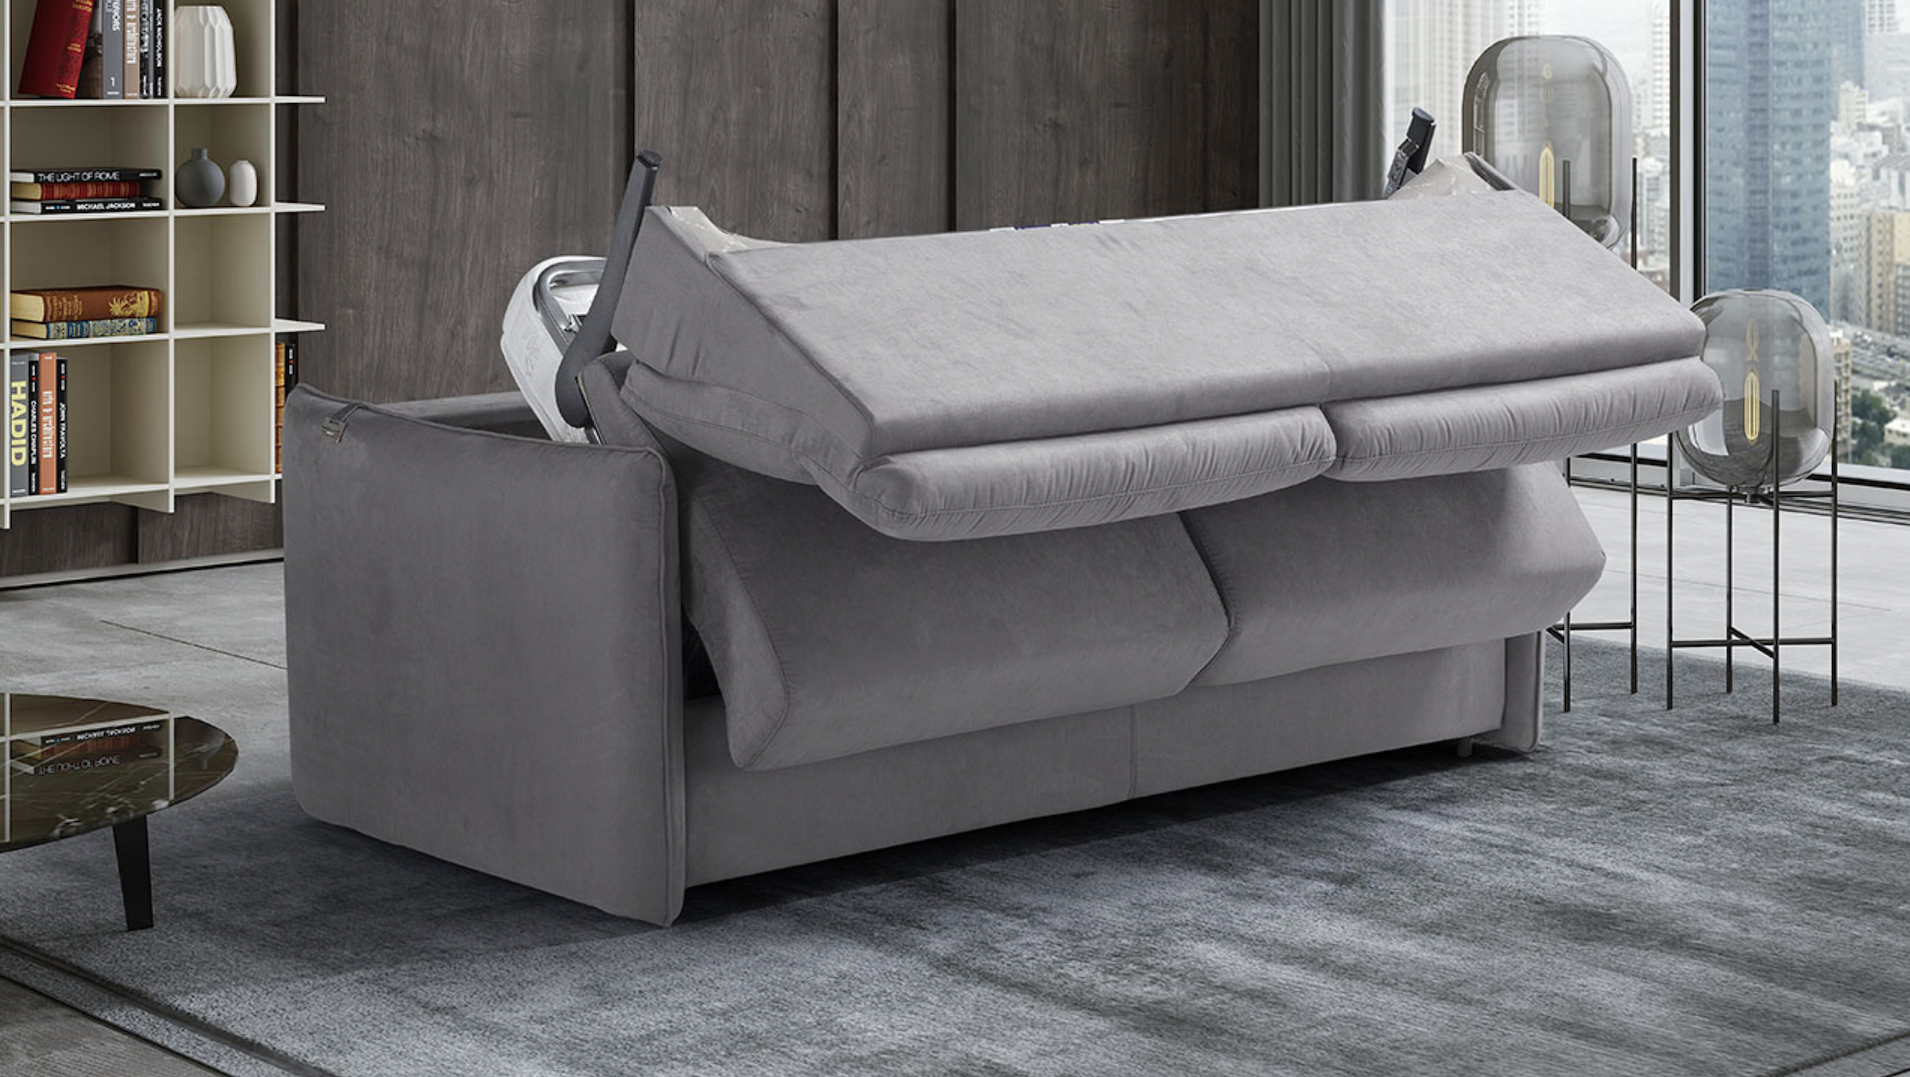 AIMEE Italian Crafted 3 Seat Sofa Bed in PLAZA SILVER RRP £1979 - Image 5 of 9